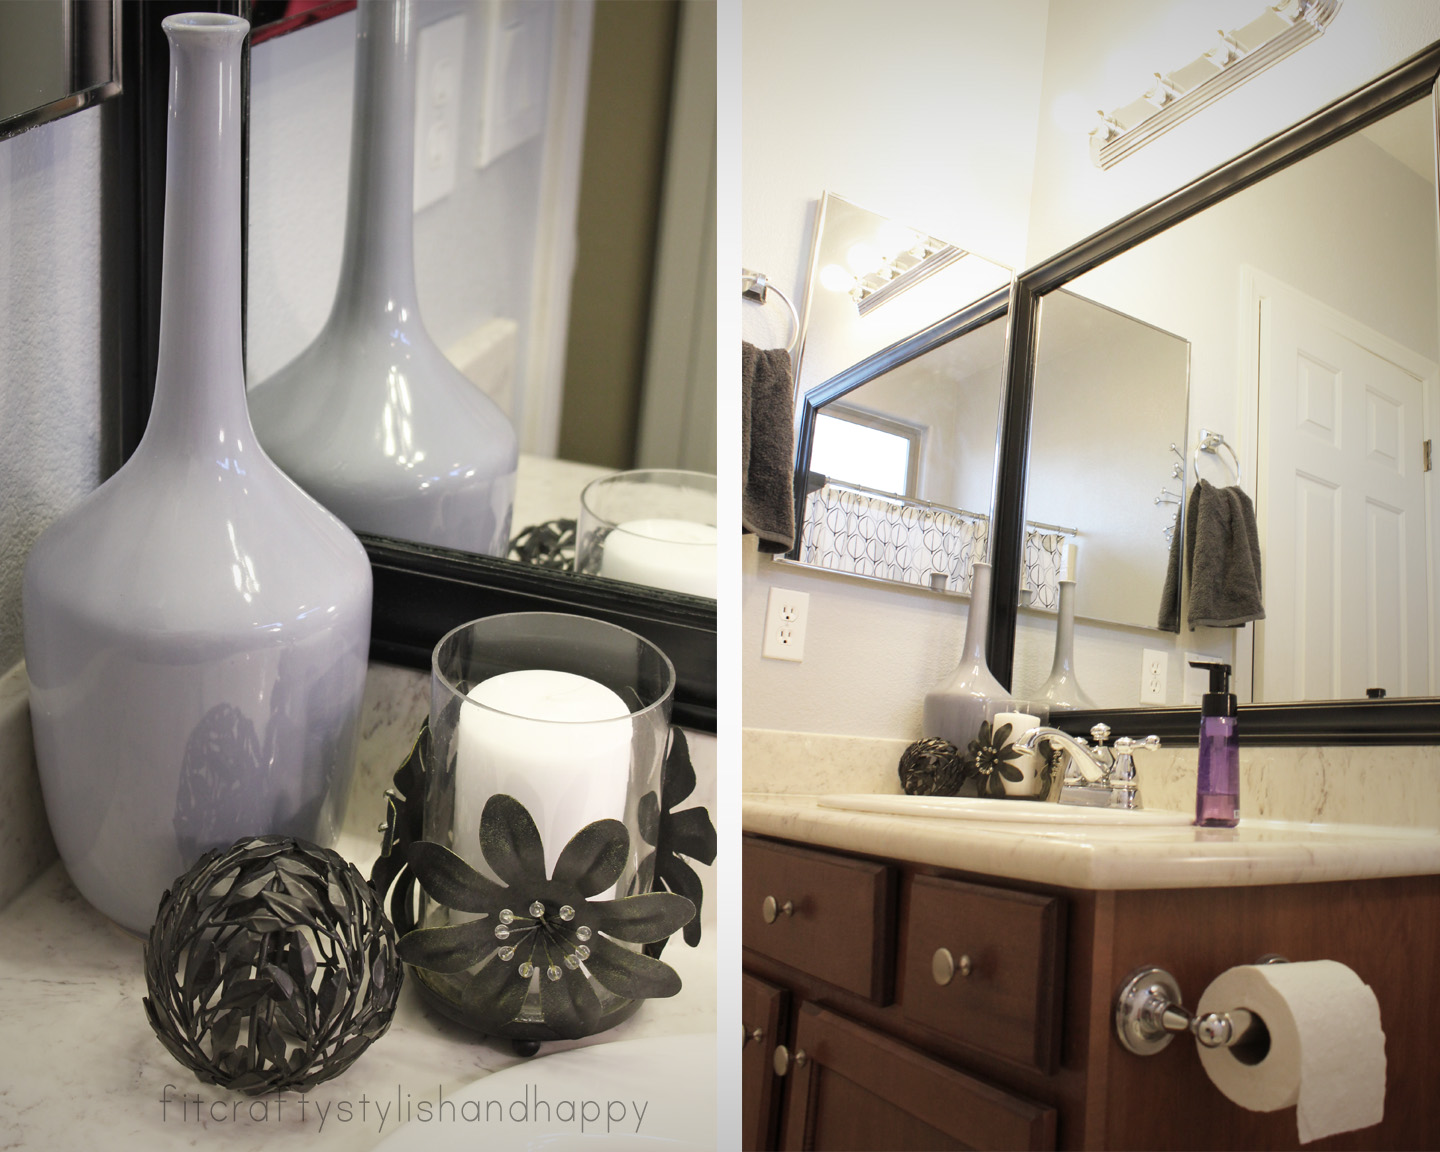 Fit crafty stylish and happy guest bathroom makeover for Bathroom decor 2012